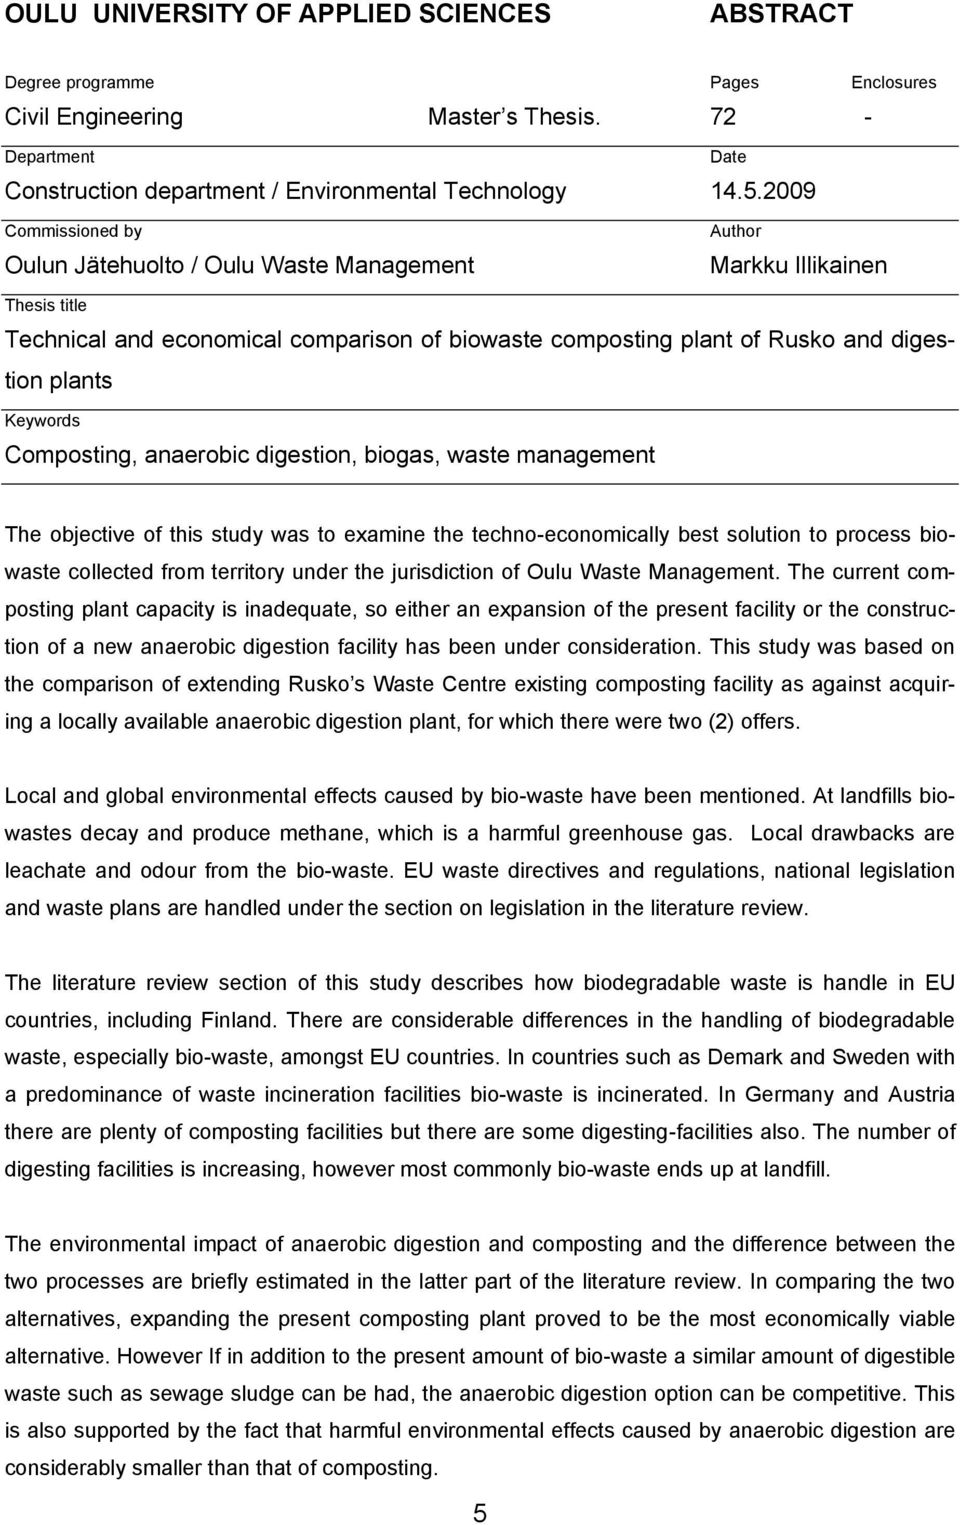 Keywords Composting, anaerobic digestion, biogas, waste management The objective of this study was to examine the techno-economically best solution to process biowaste collected from territory under